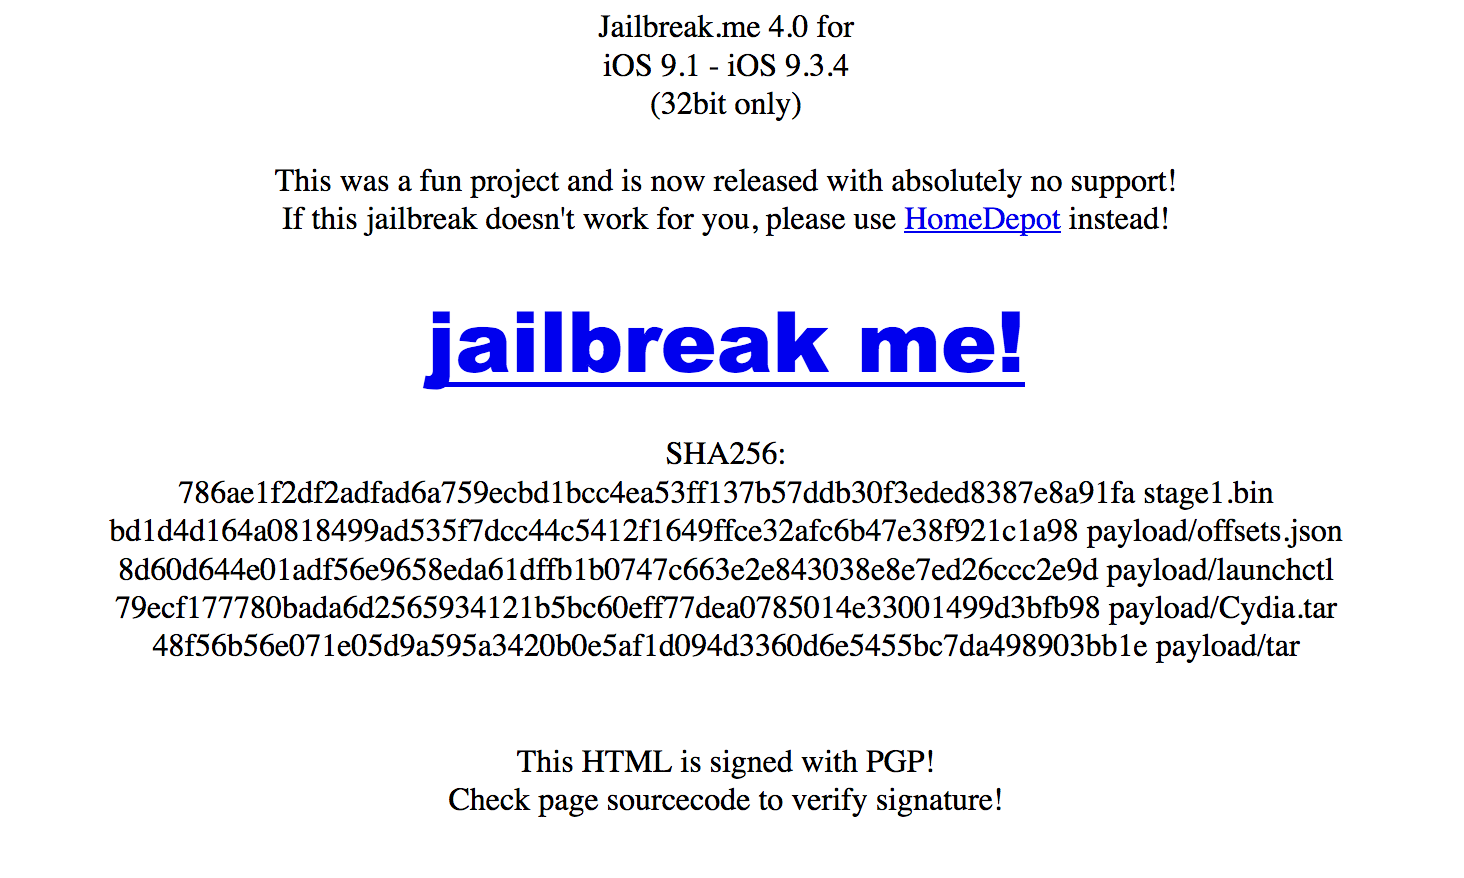 Tihmstar launches JailbreakMe 4 0 for 32-bit iOS 9 1-9 3 4 devices